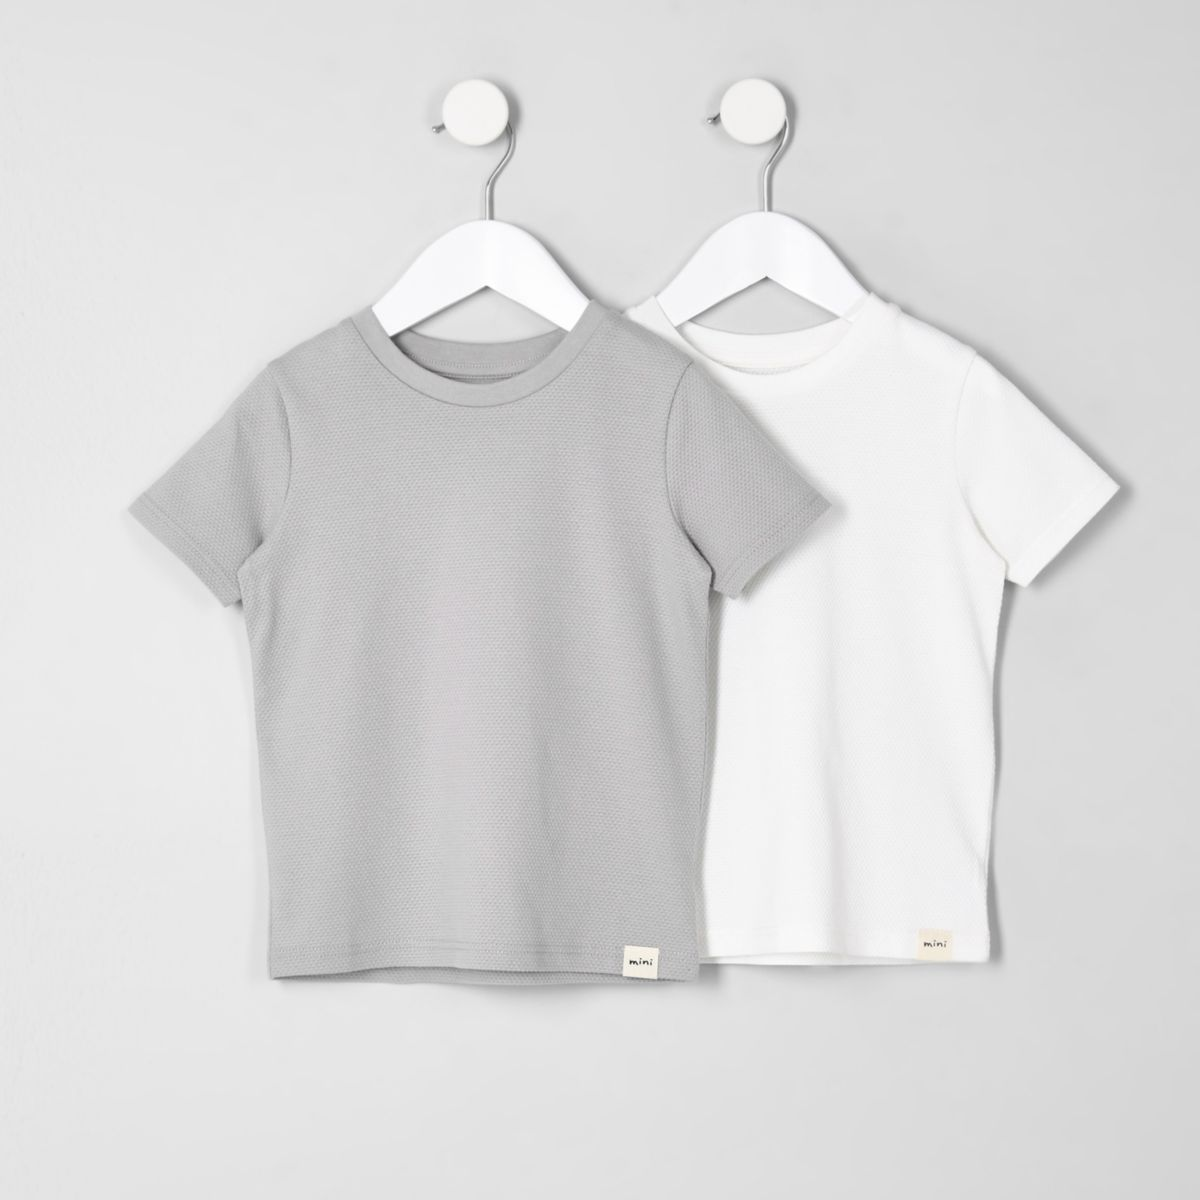 Mini boys white and grey T-shirt multipack